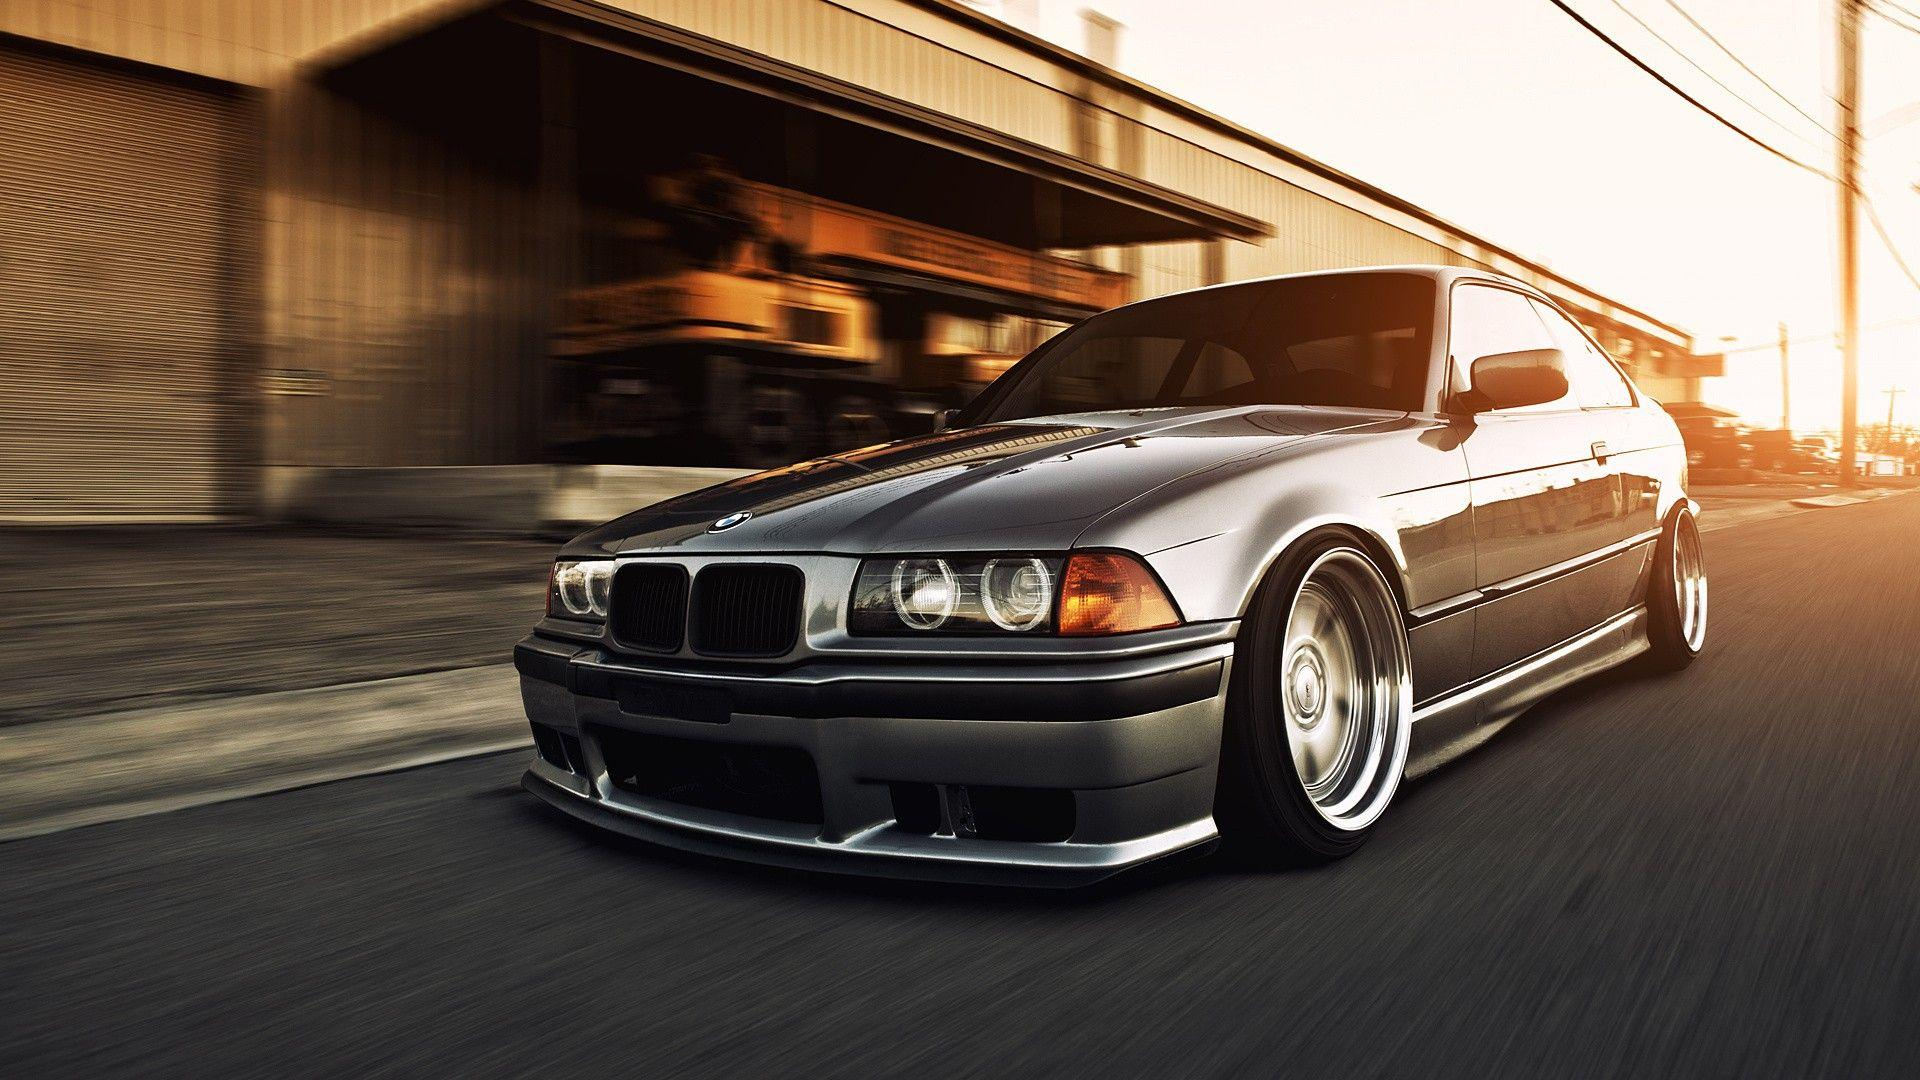 Old BMW Wallpapers - Wallpaper Cave